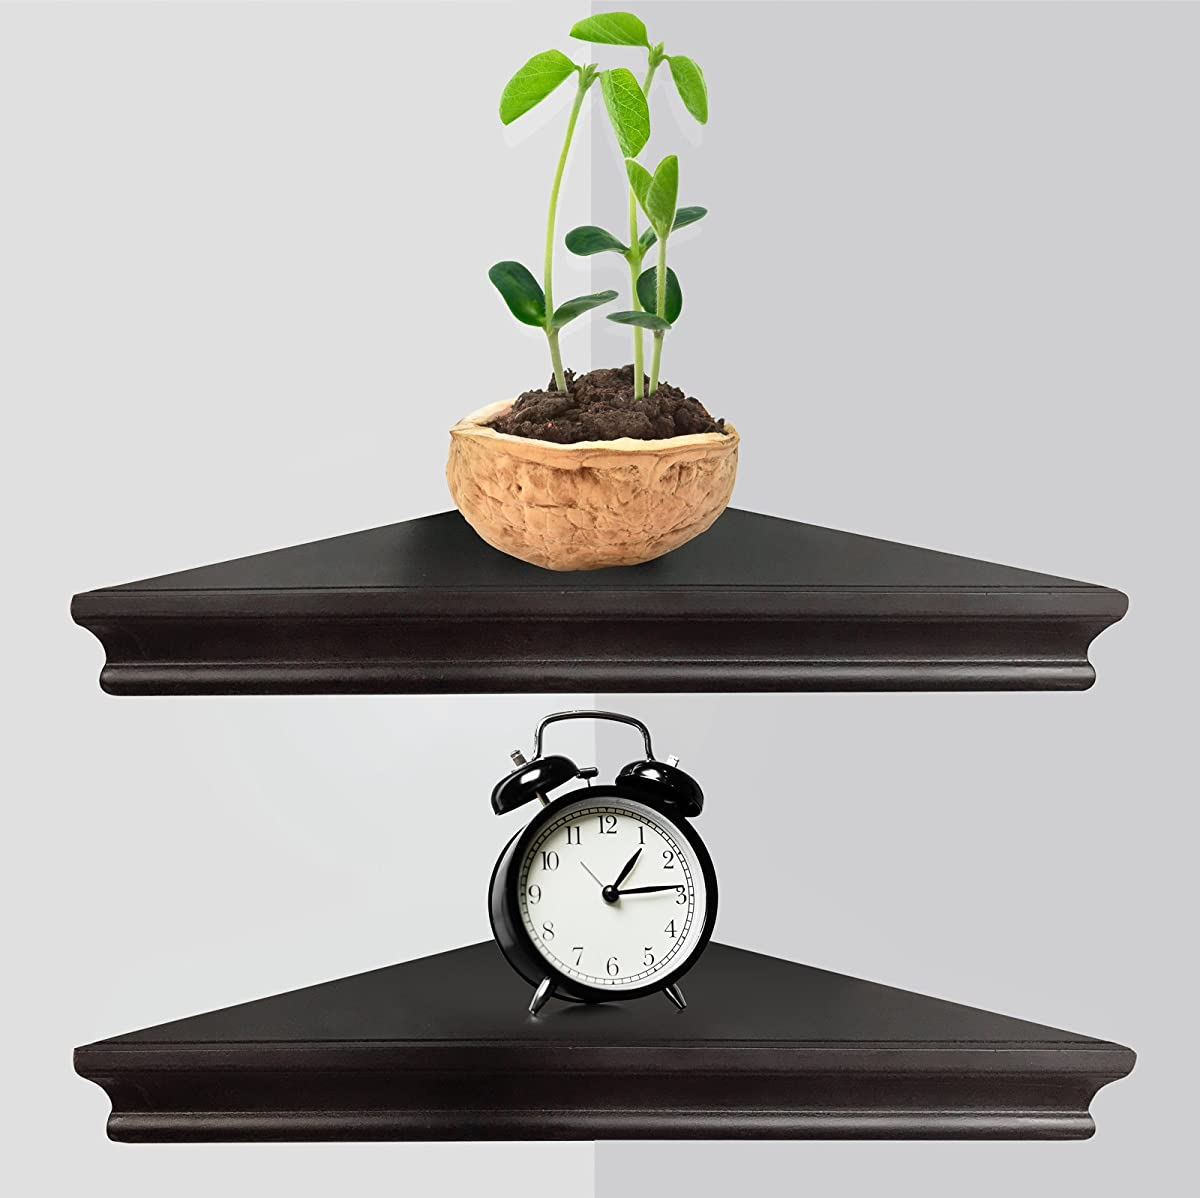 Greenco Set of 2 Corner Floating Shelves with Concealed Hardware- Espresso Finish